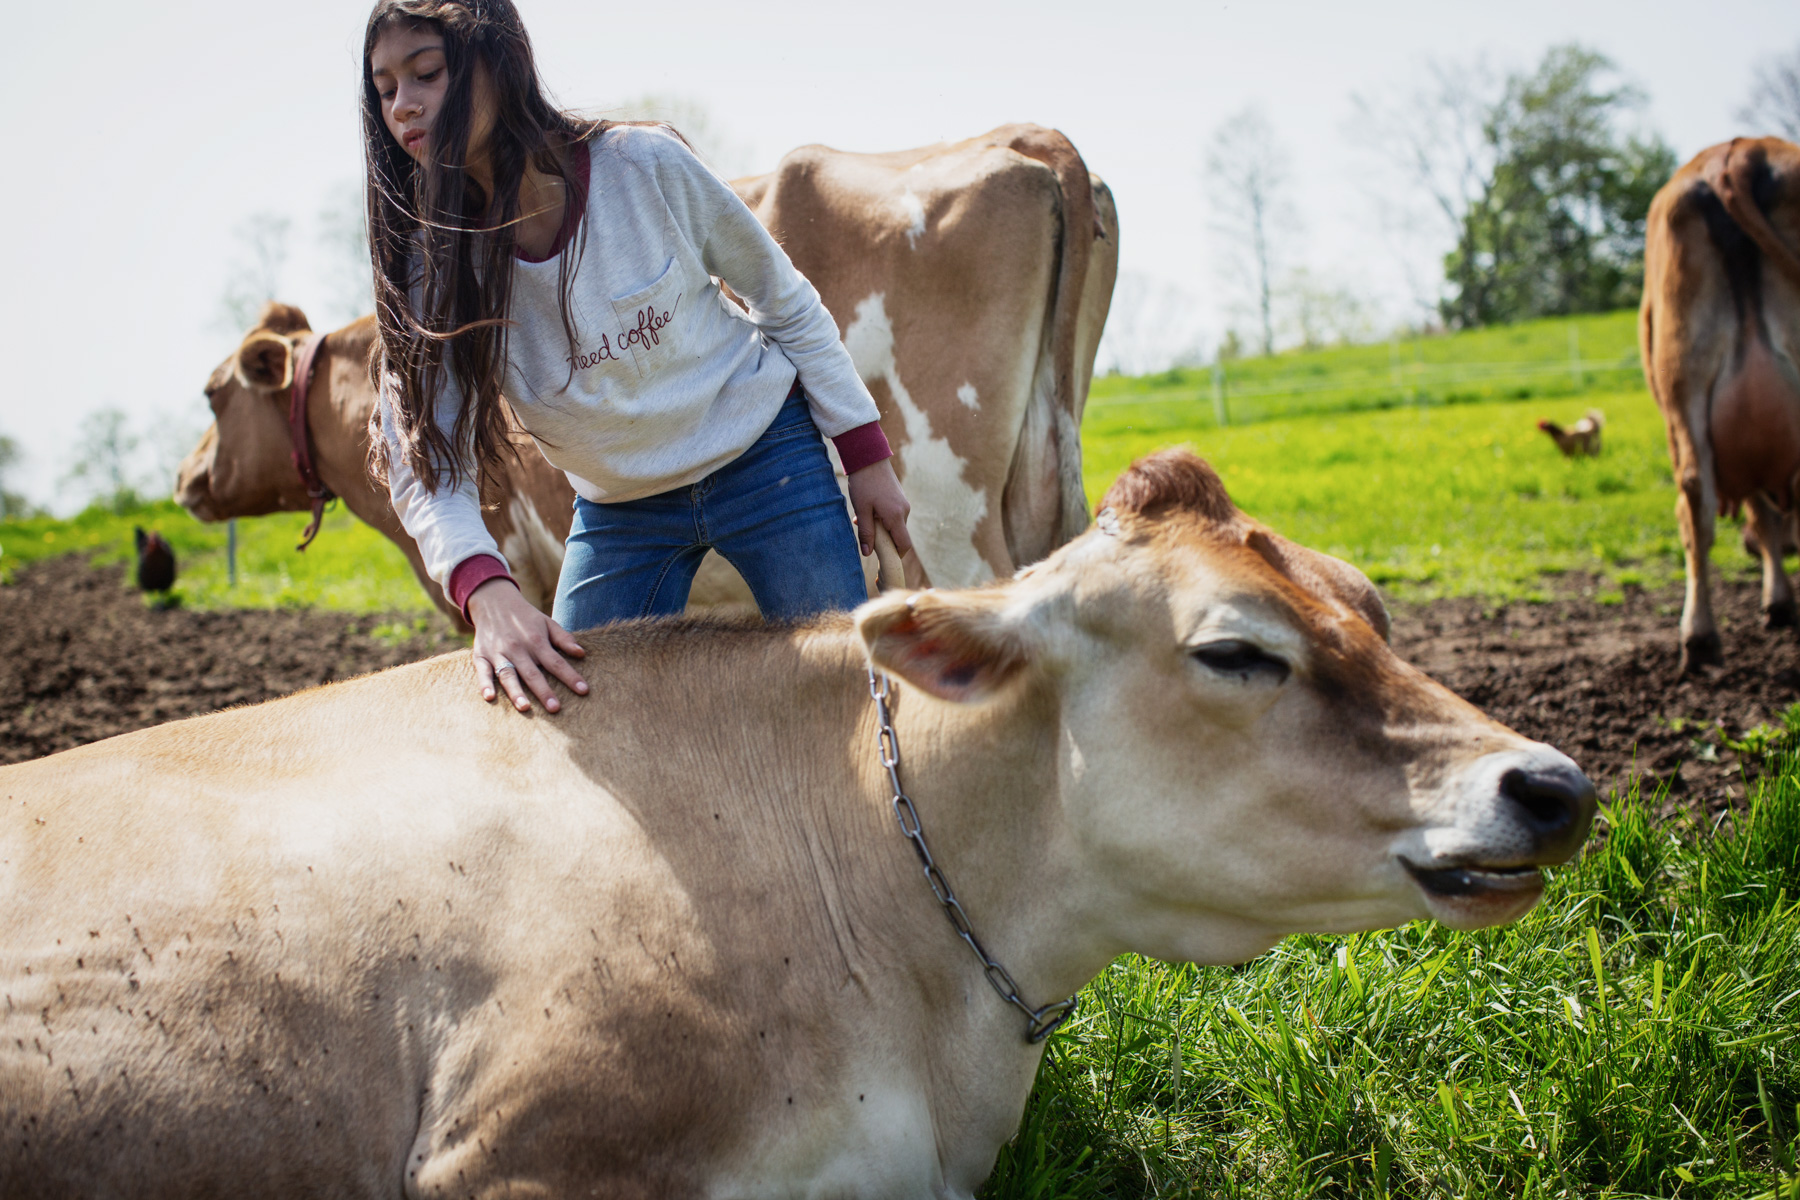 girl-pet-cow-1.jpg